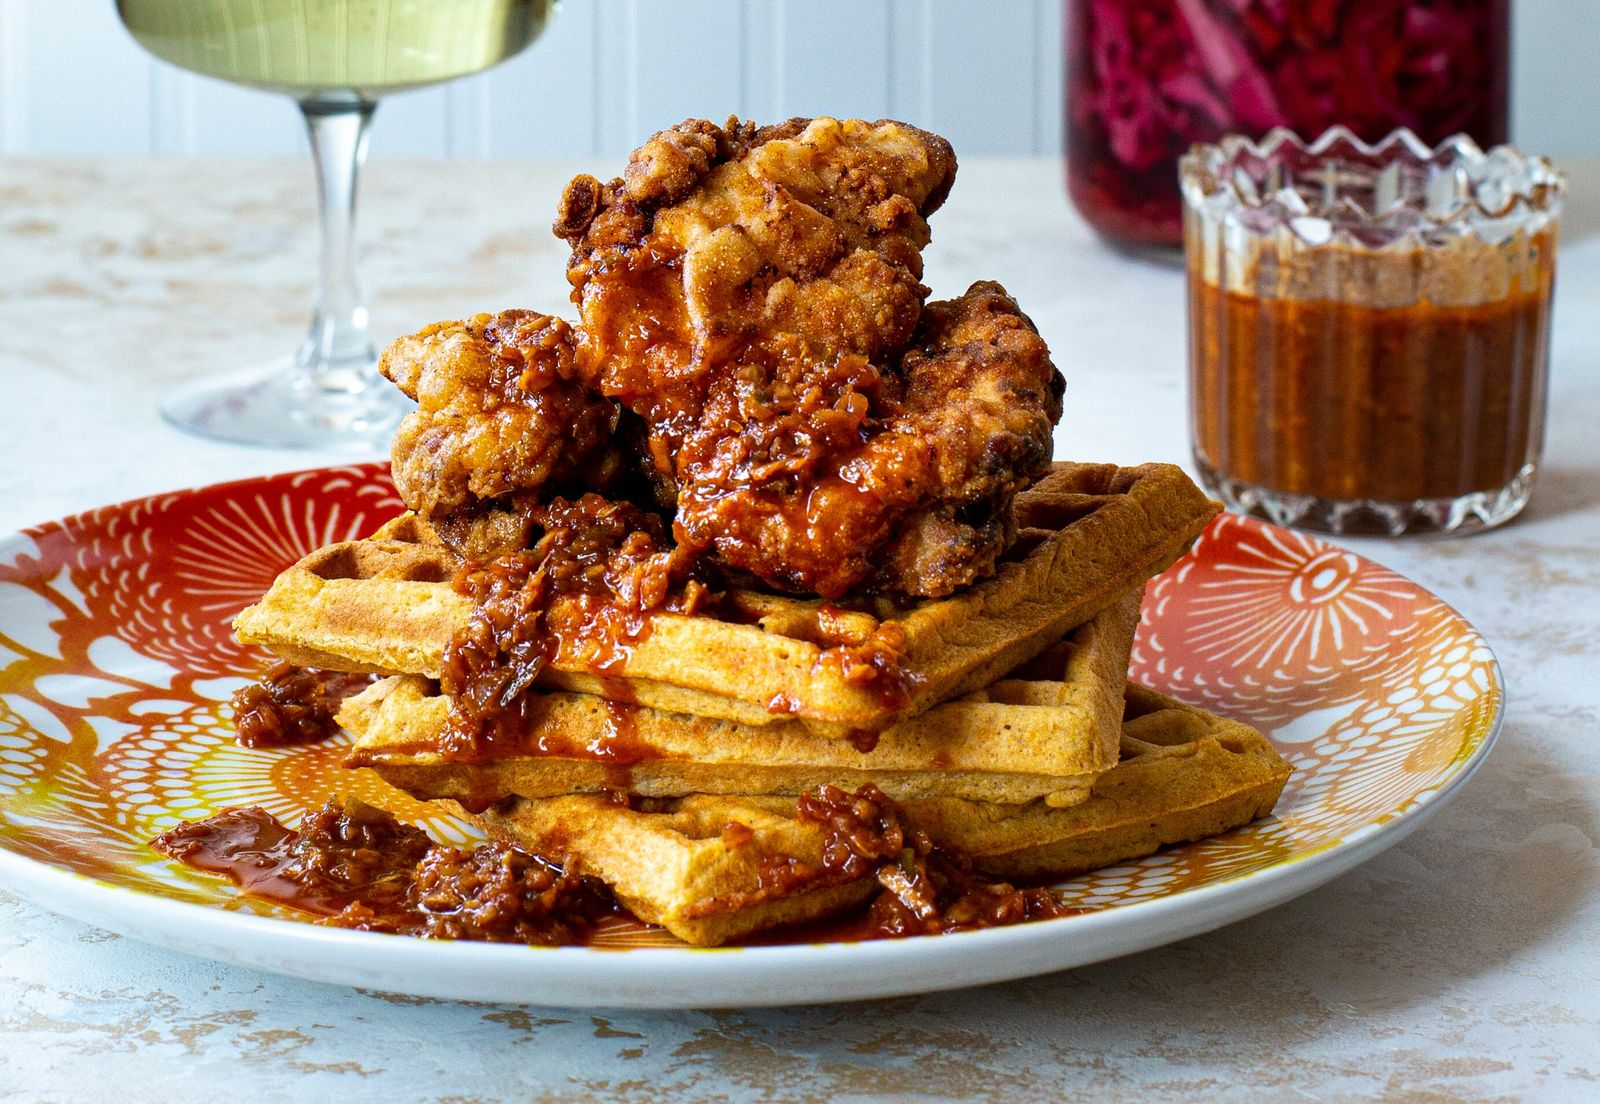 How to make the perfect fried chicken and waffles